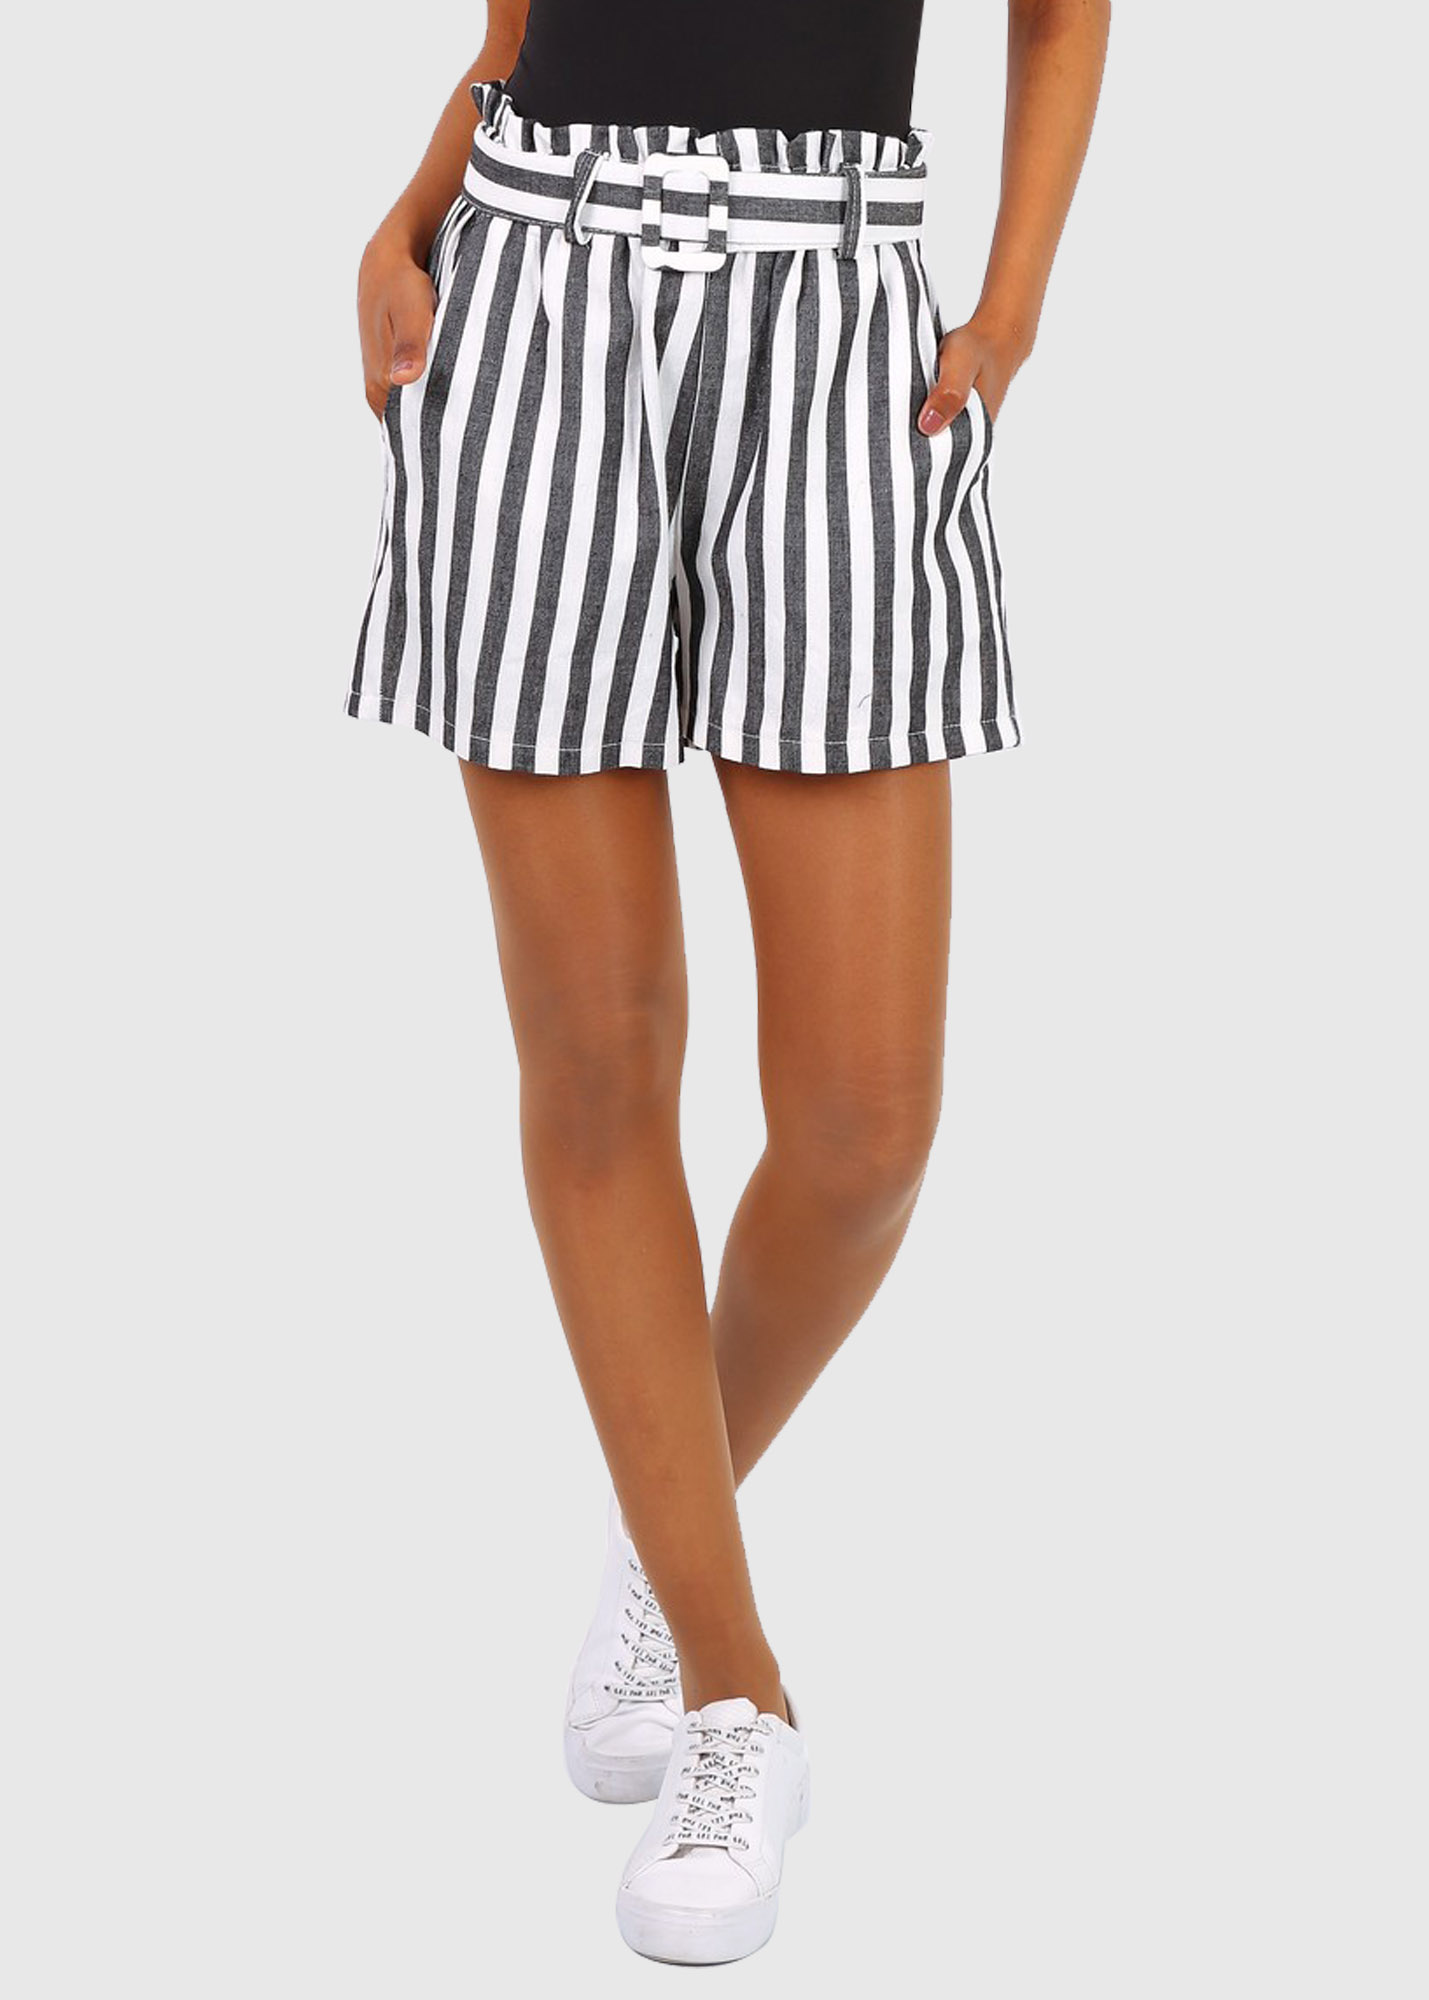 Marcella black striped shorts